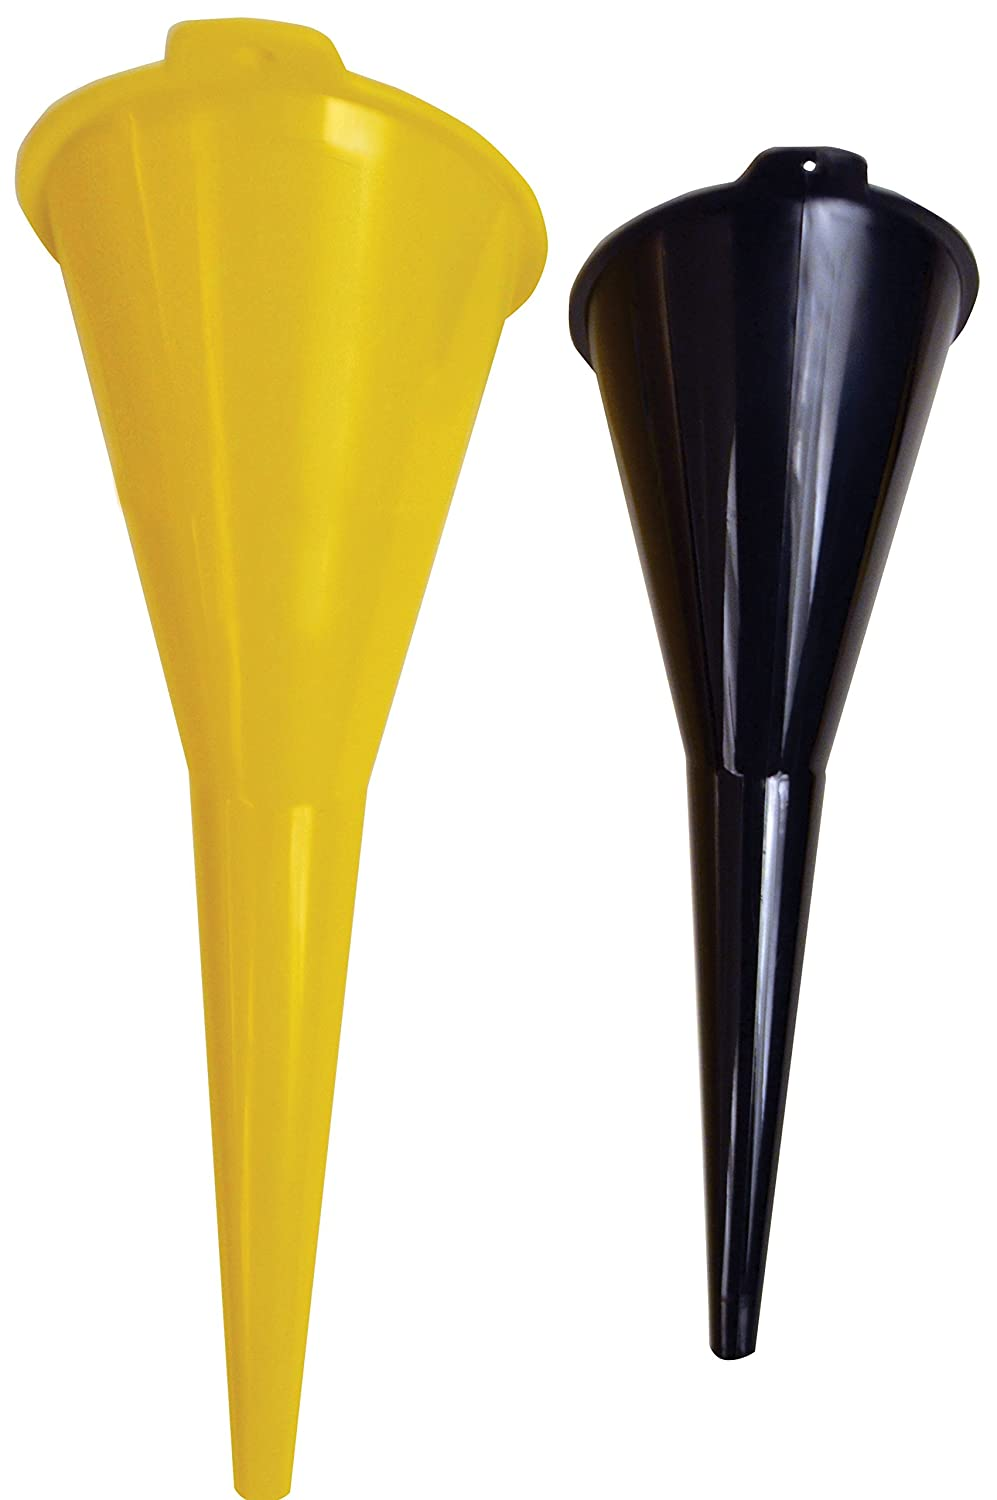 Pennzoil 31120 Multi-Purpose Funnel, (Pack of 2)